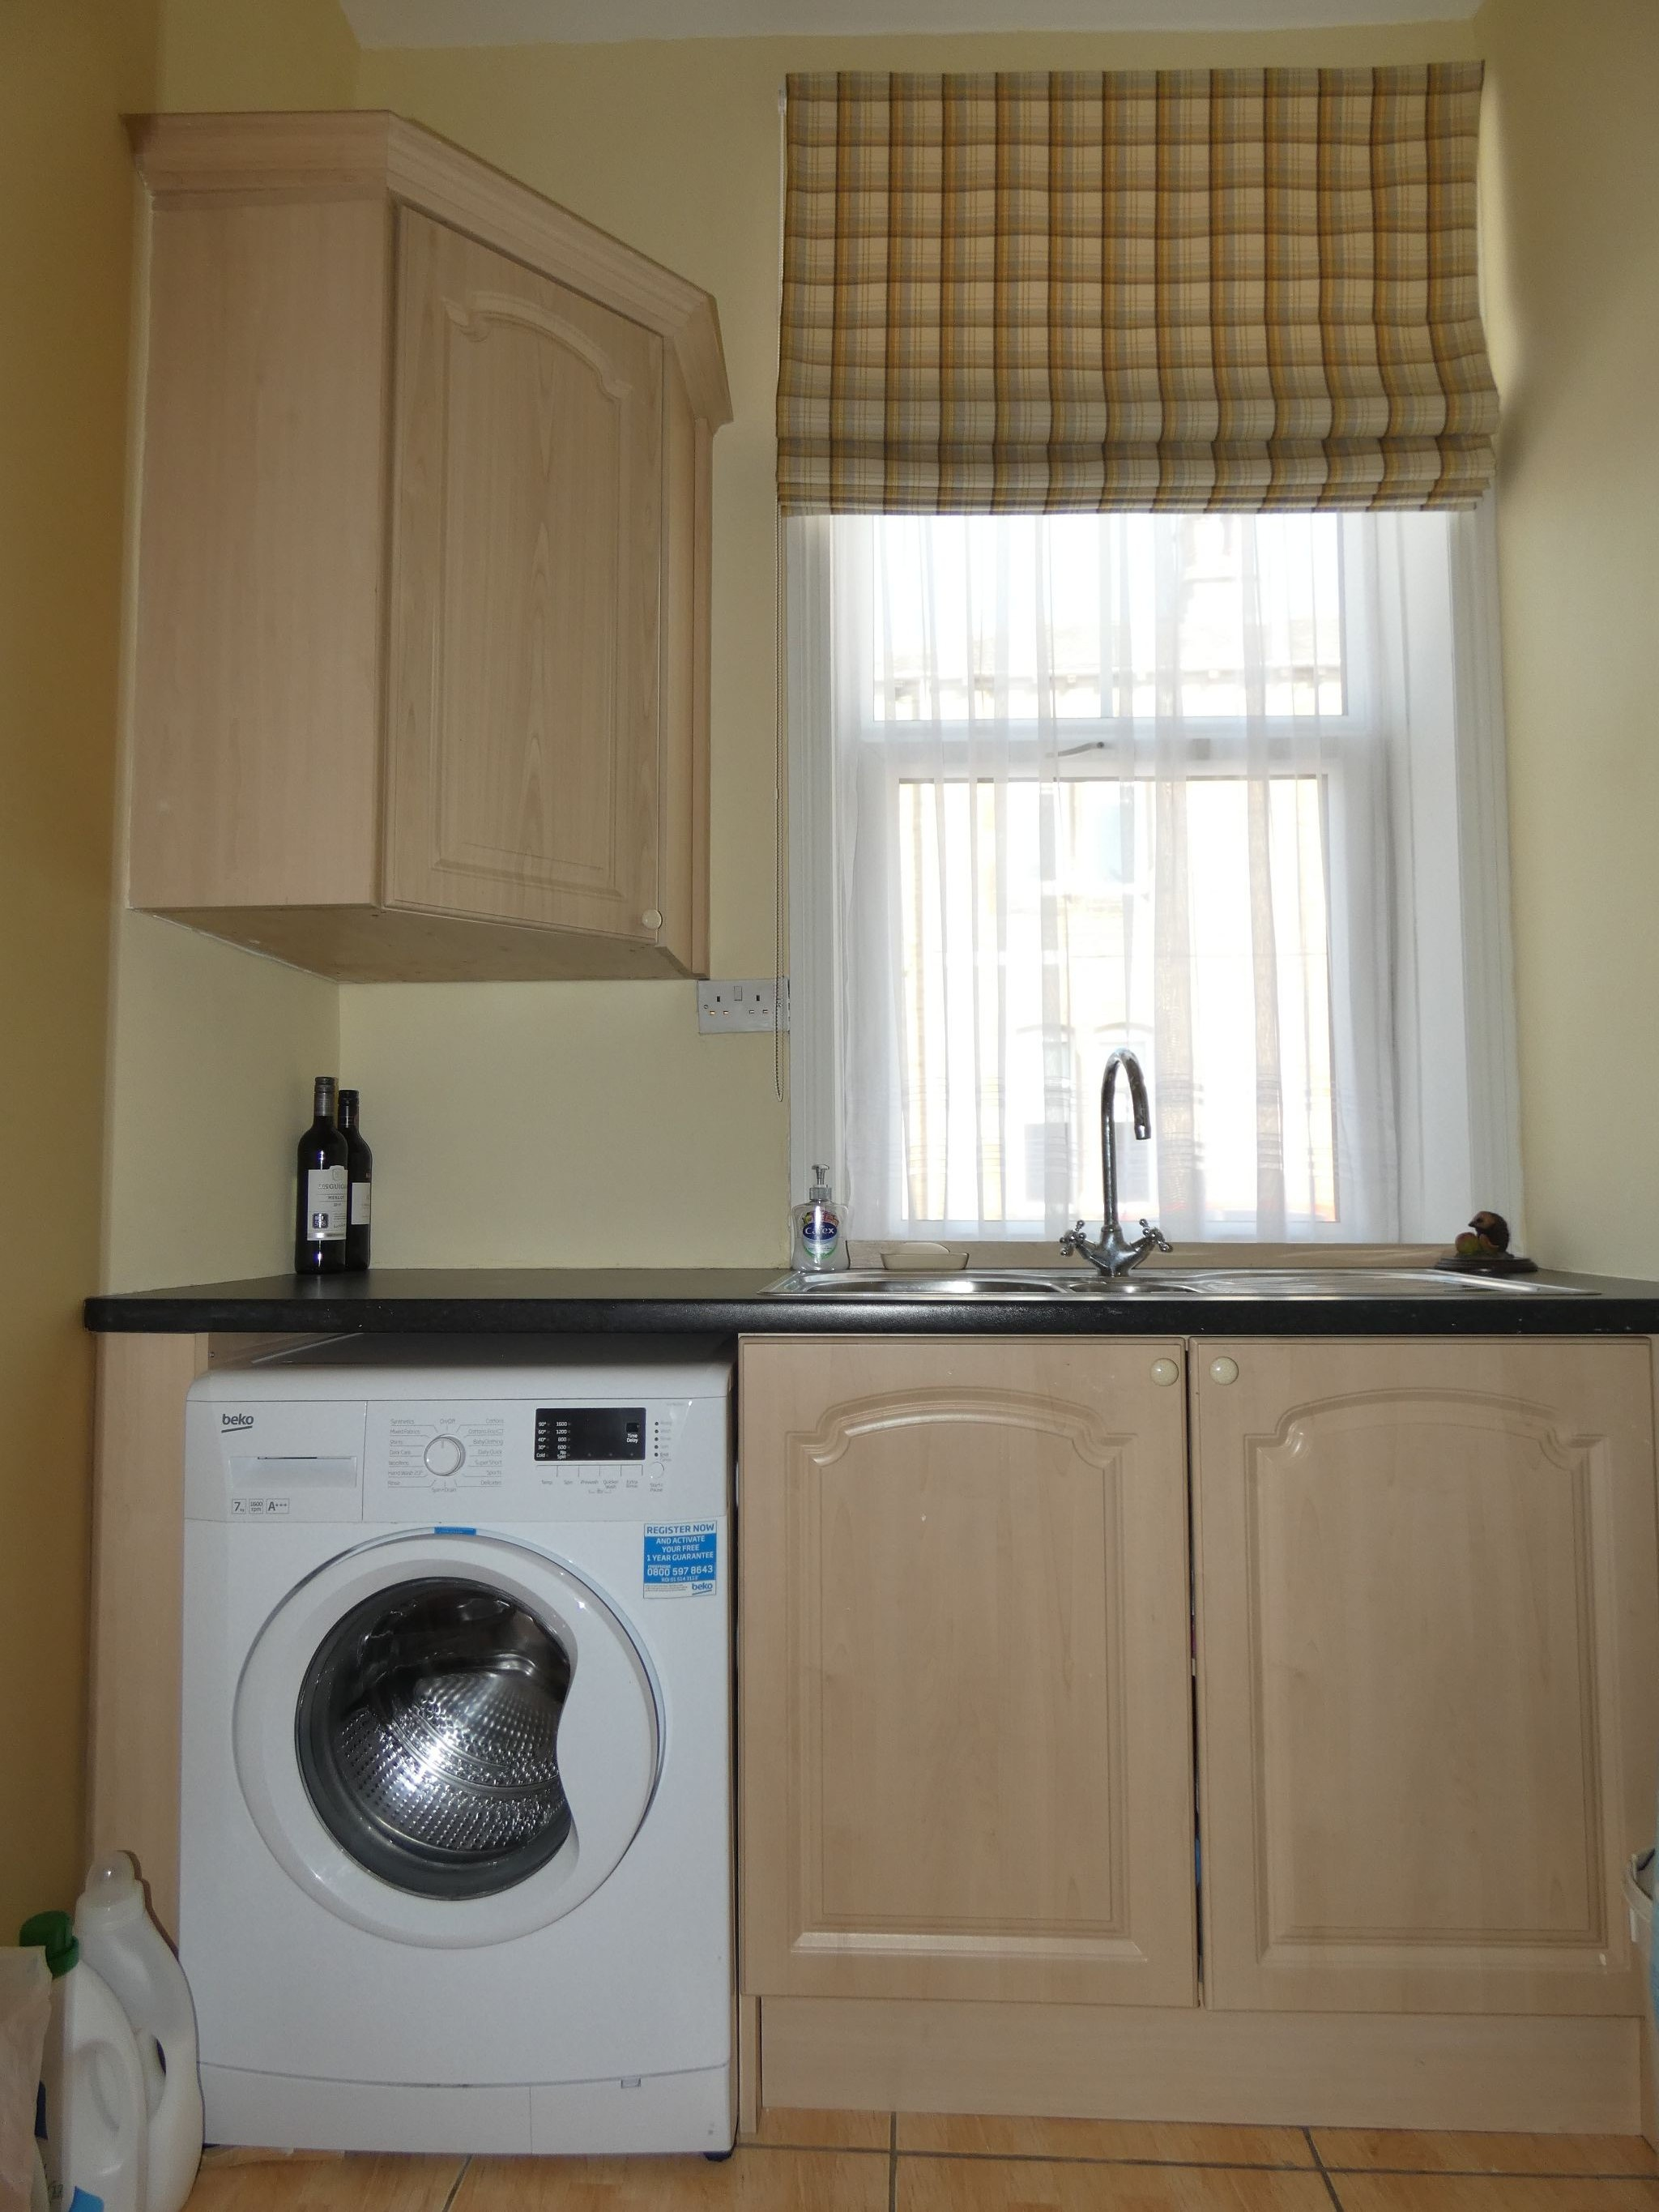 5 bedroom semi-detached house For Sale in Bishop Auckland - Utility Room.